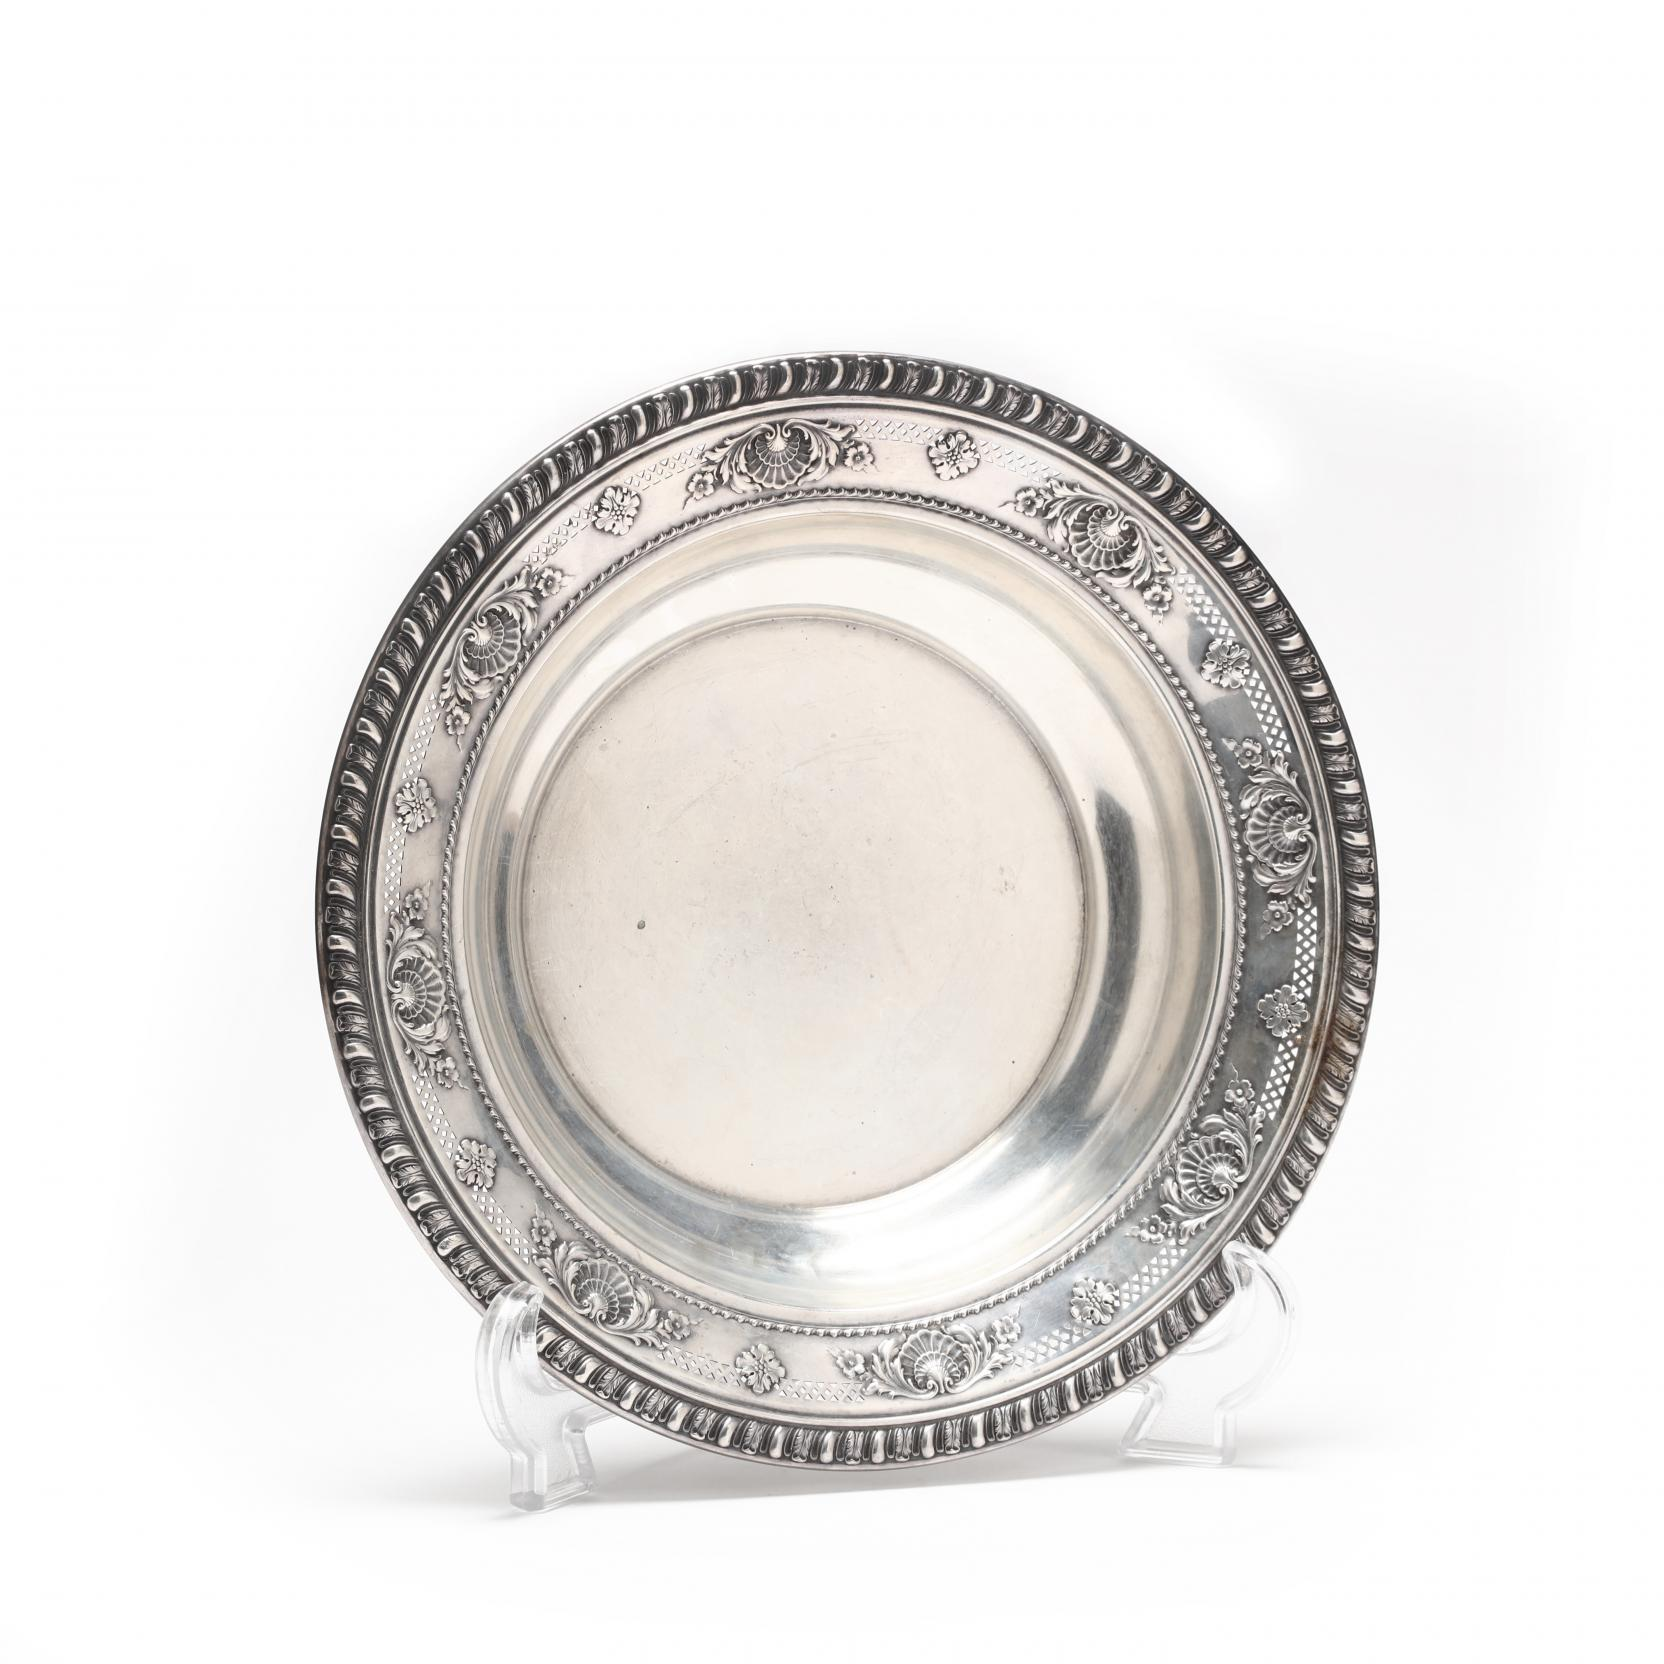 wallace-sir-christopher-sterling-silver-center-bowl